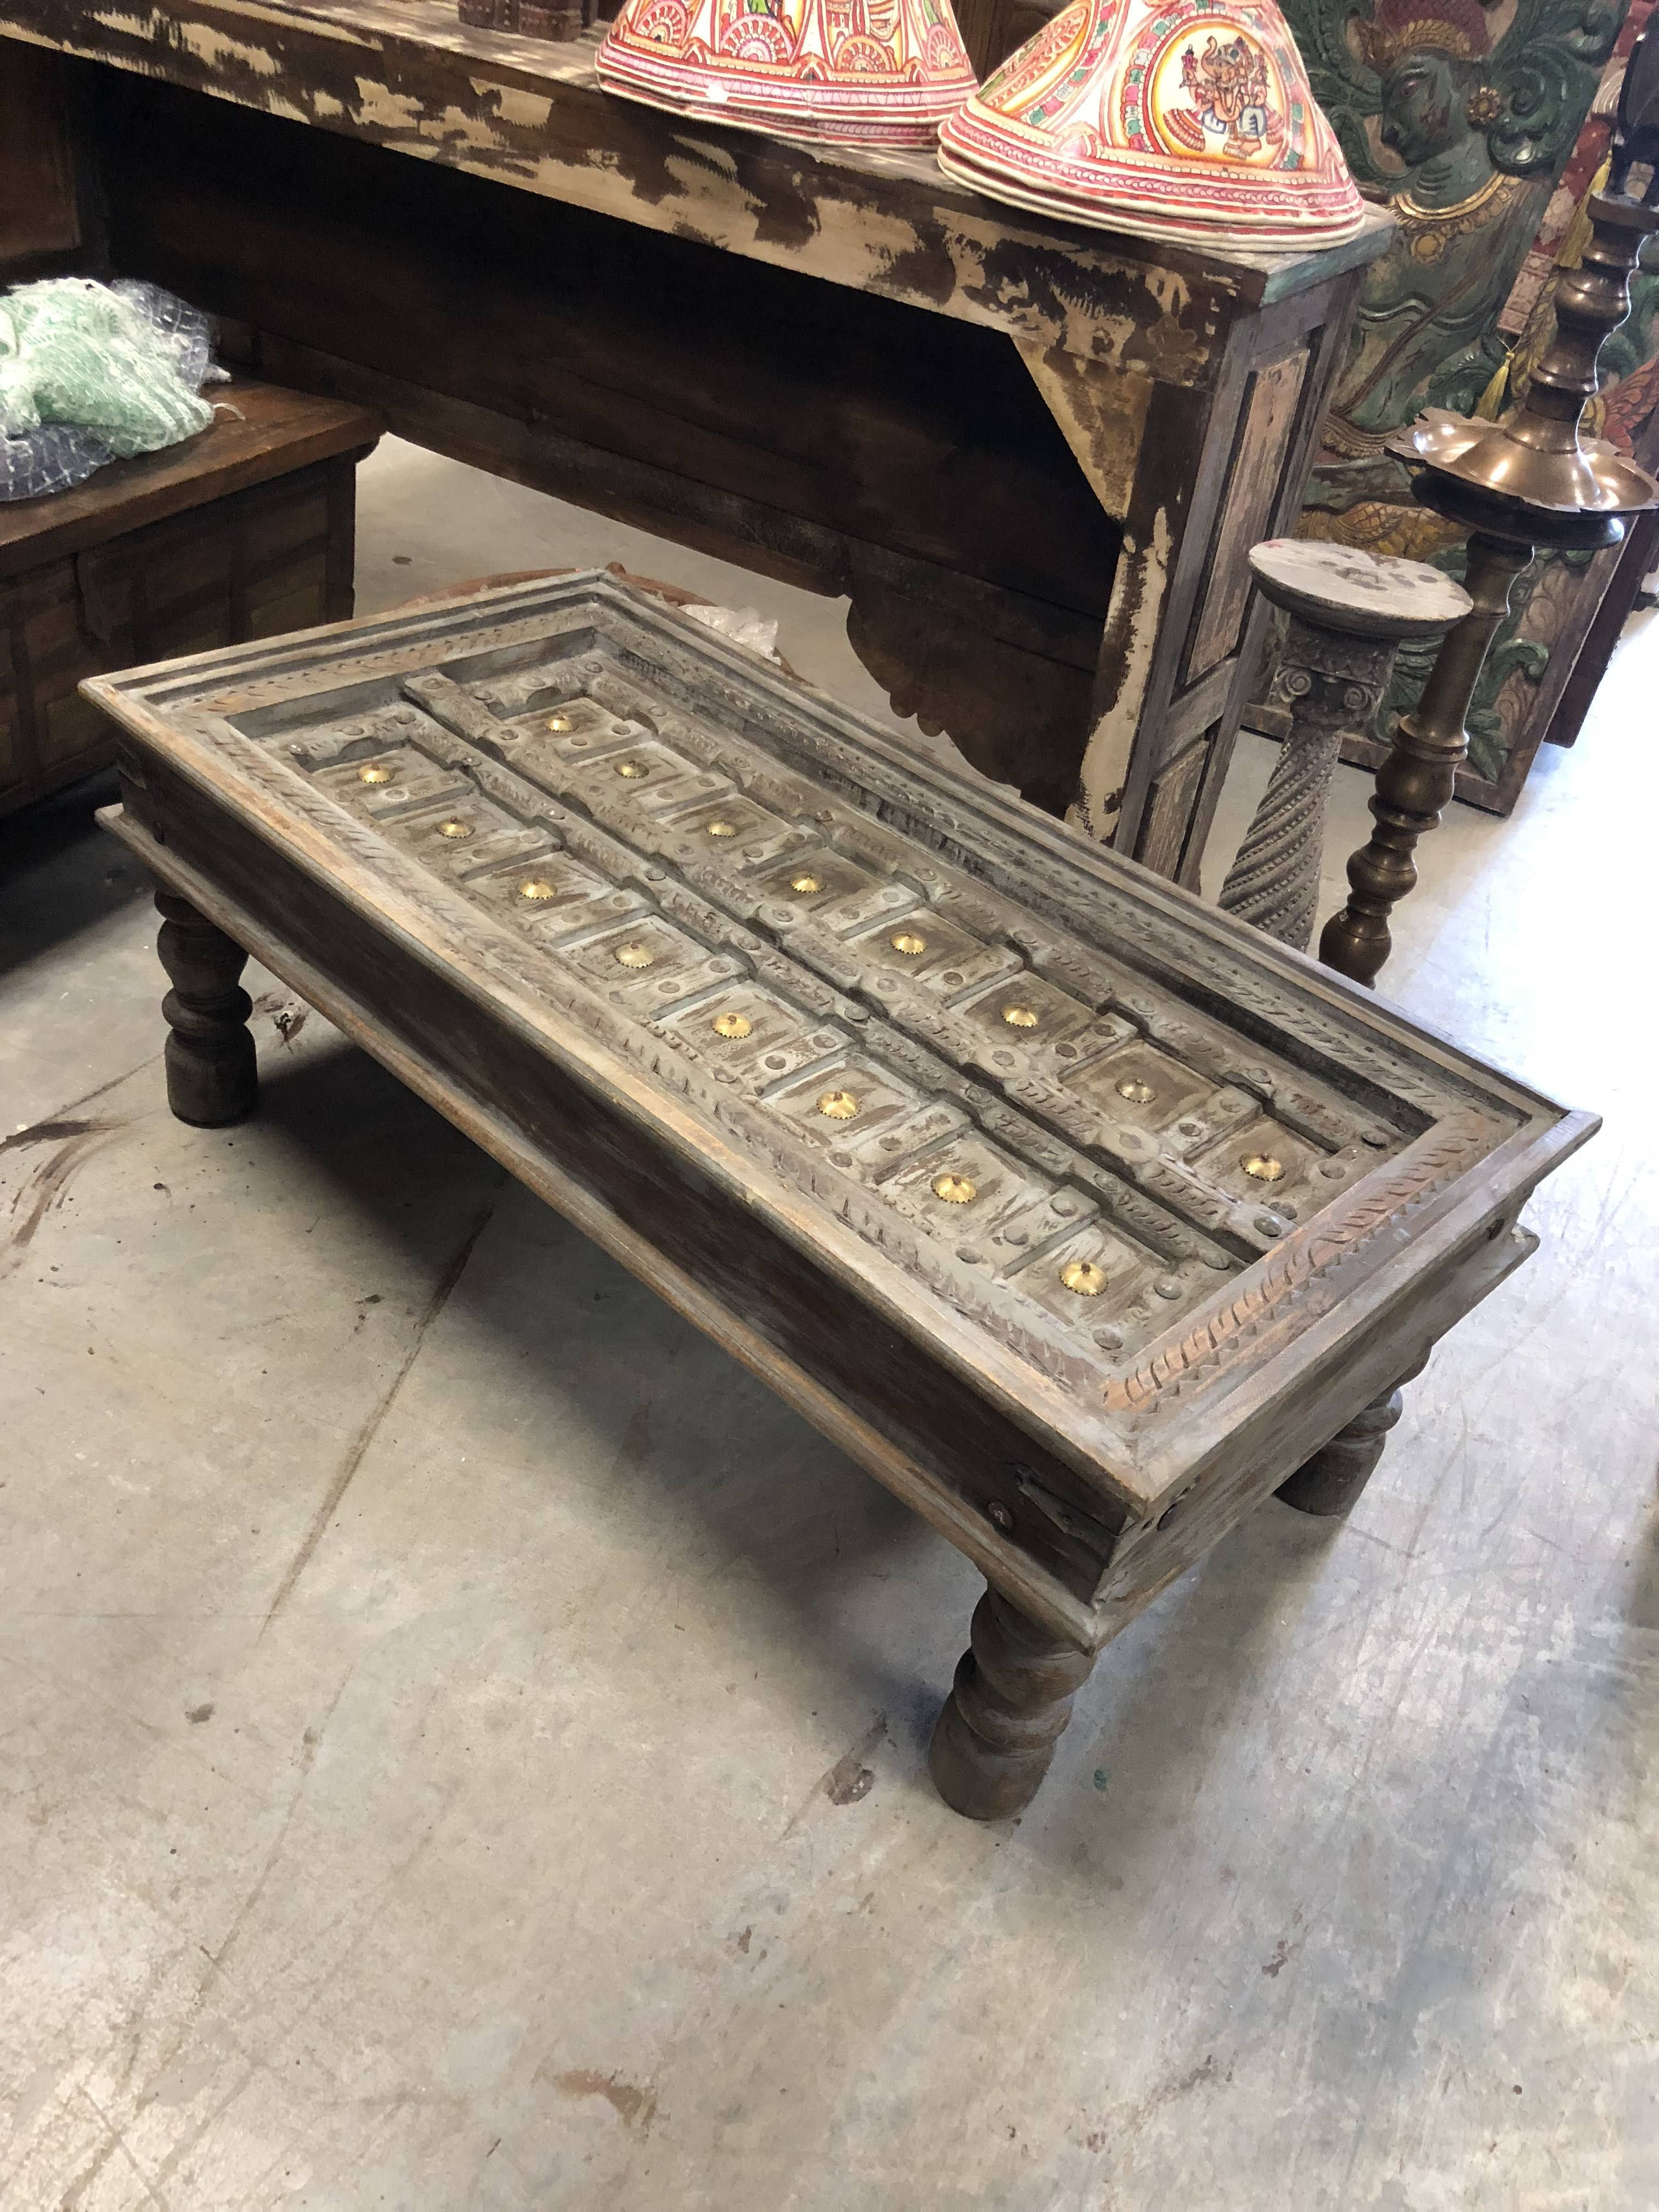 Antique Indian Handcarved Coffee Table Unique Hotel Design Rustic Vintage Furniture Farmhouse Decor Chai Table Am Coffee Table Rustic Doors Indian Coffee Table